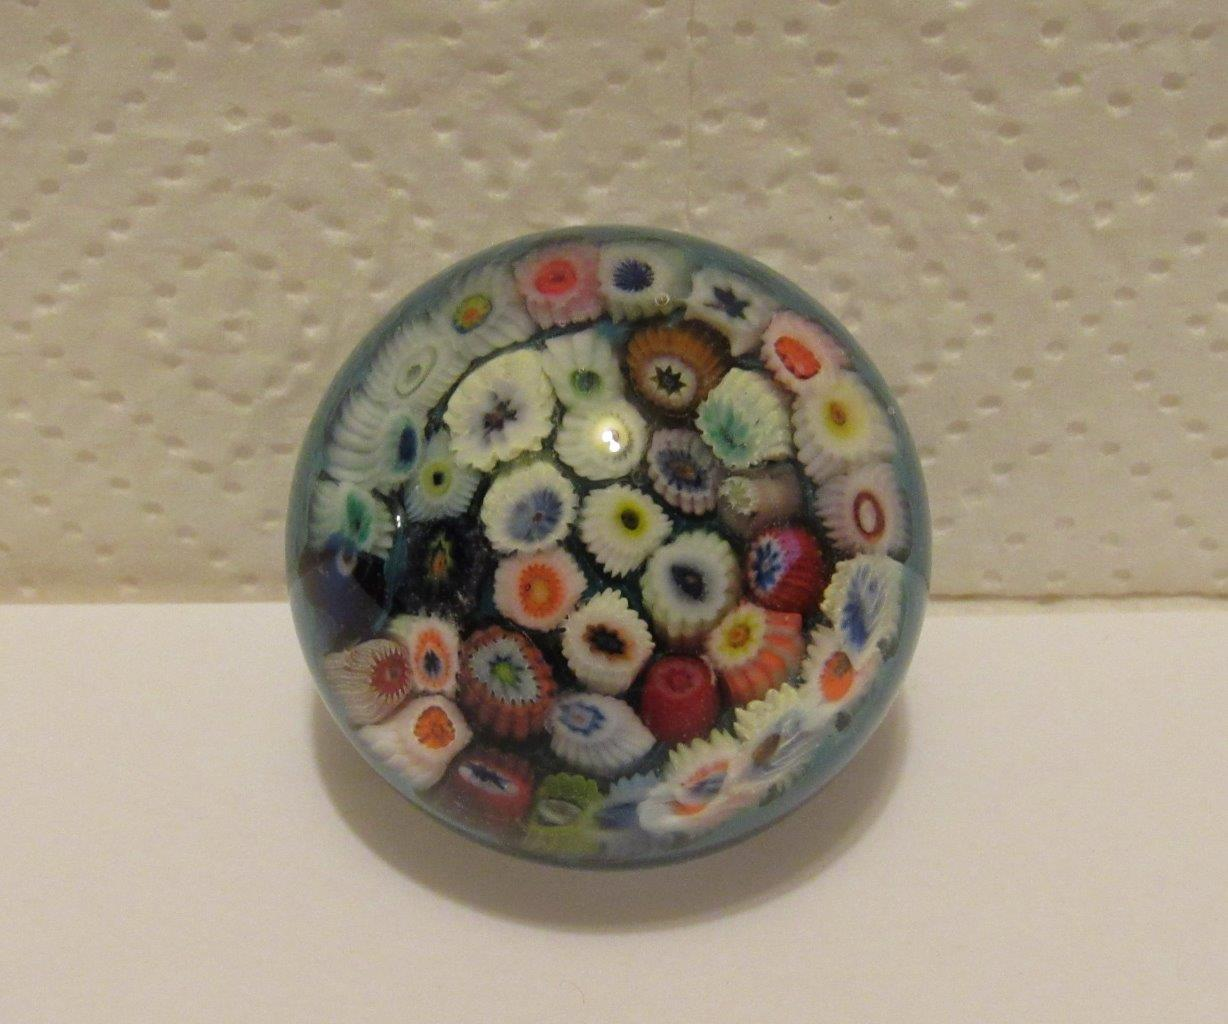 VINTAGE PERTHSHIRE GLASS PAPERWEIGHT MILLEFIORI GLASS CANES STRATHEARN SCOTLAND